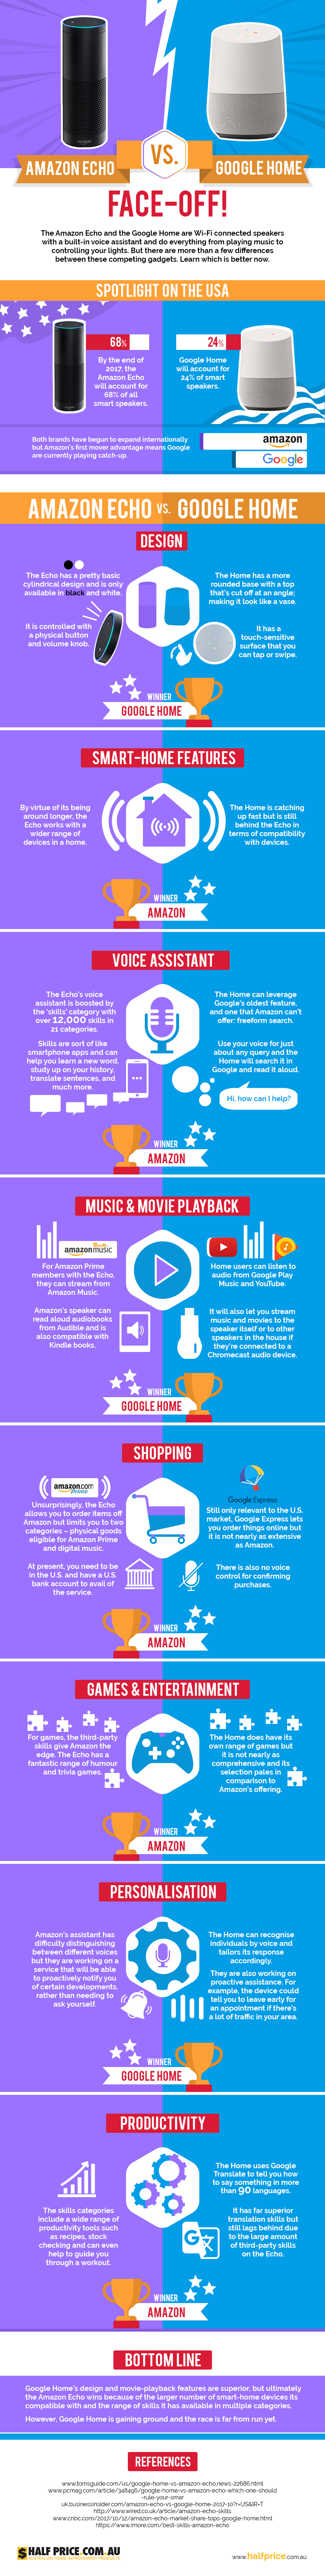 Speaker Speak: Amazon Echo Vs Google Home - Infographic